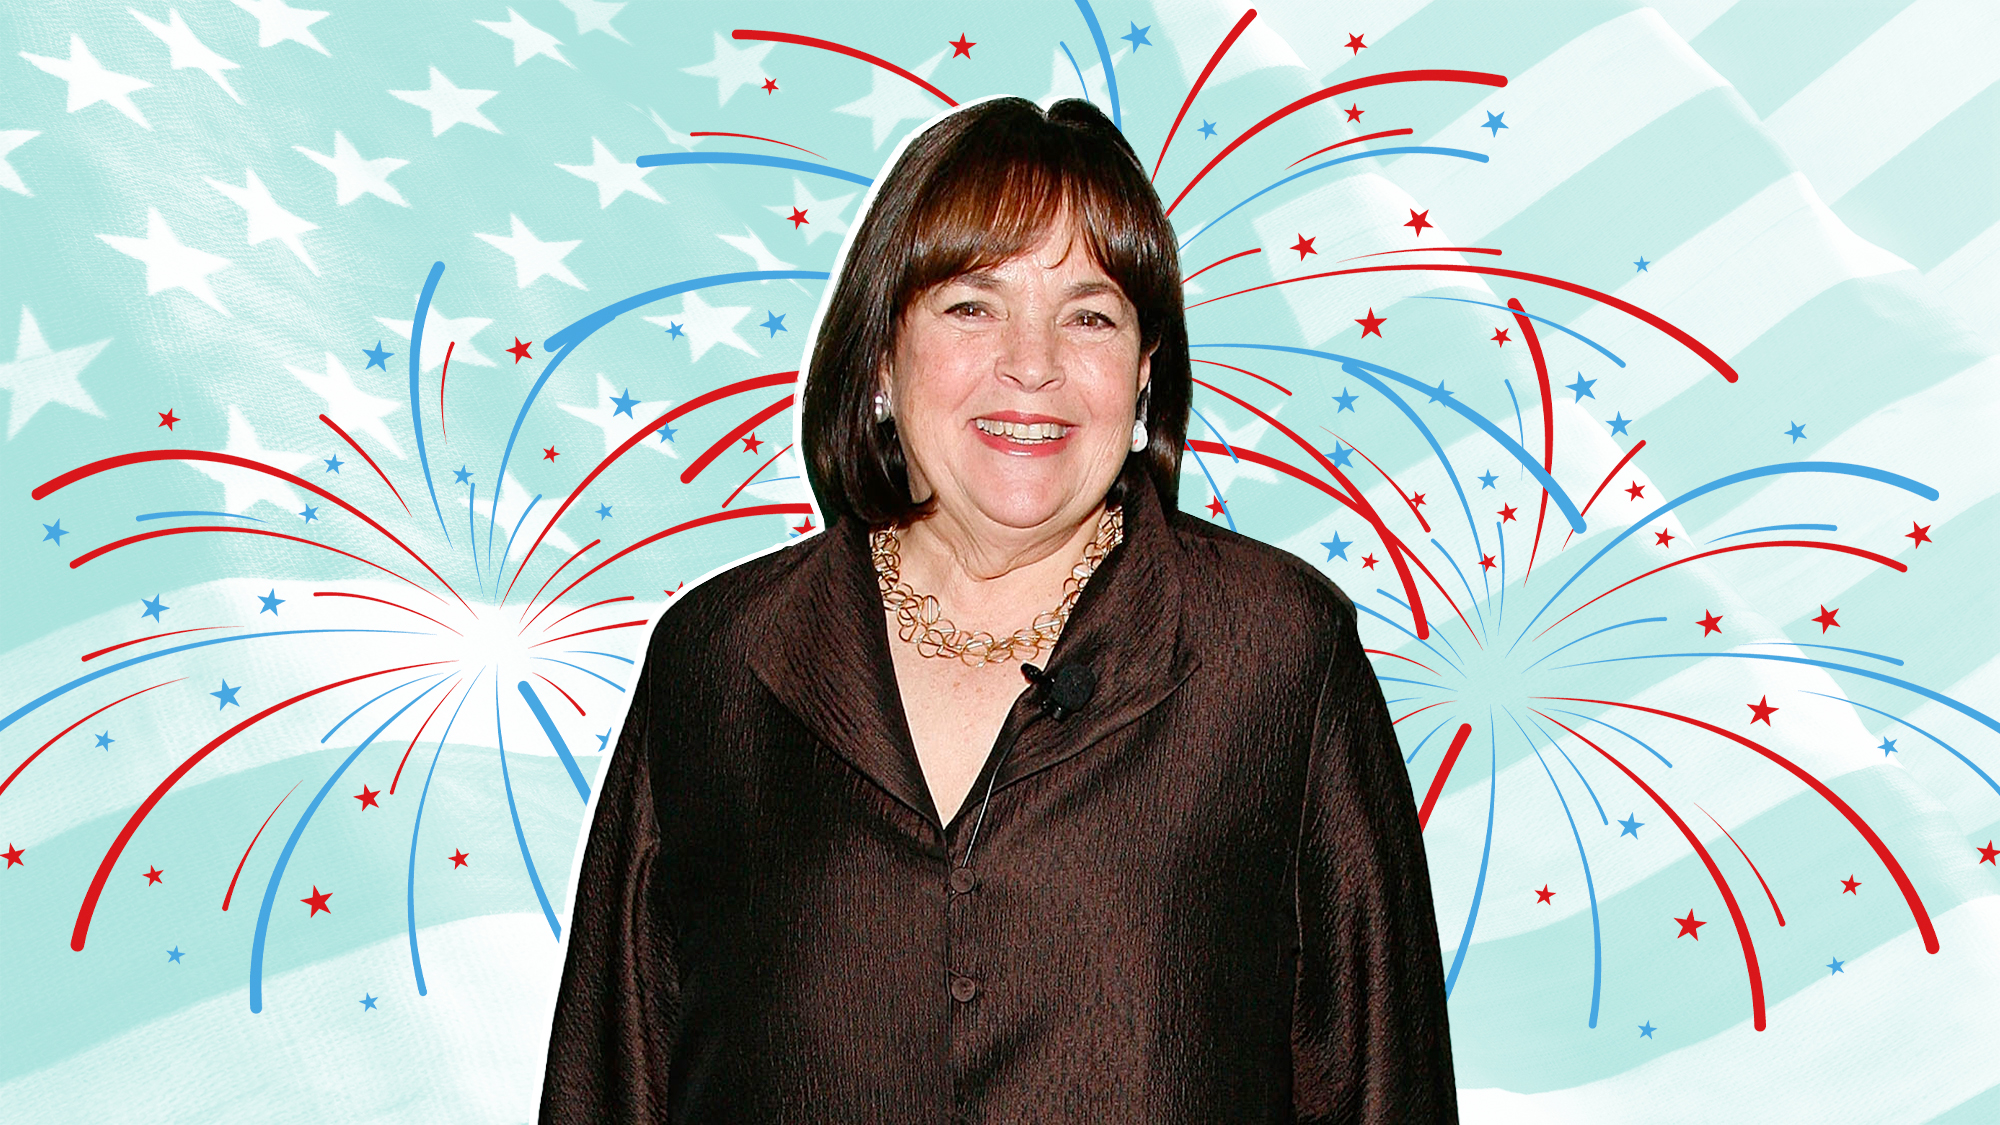 Ina Garten on a 4th of July Themed background